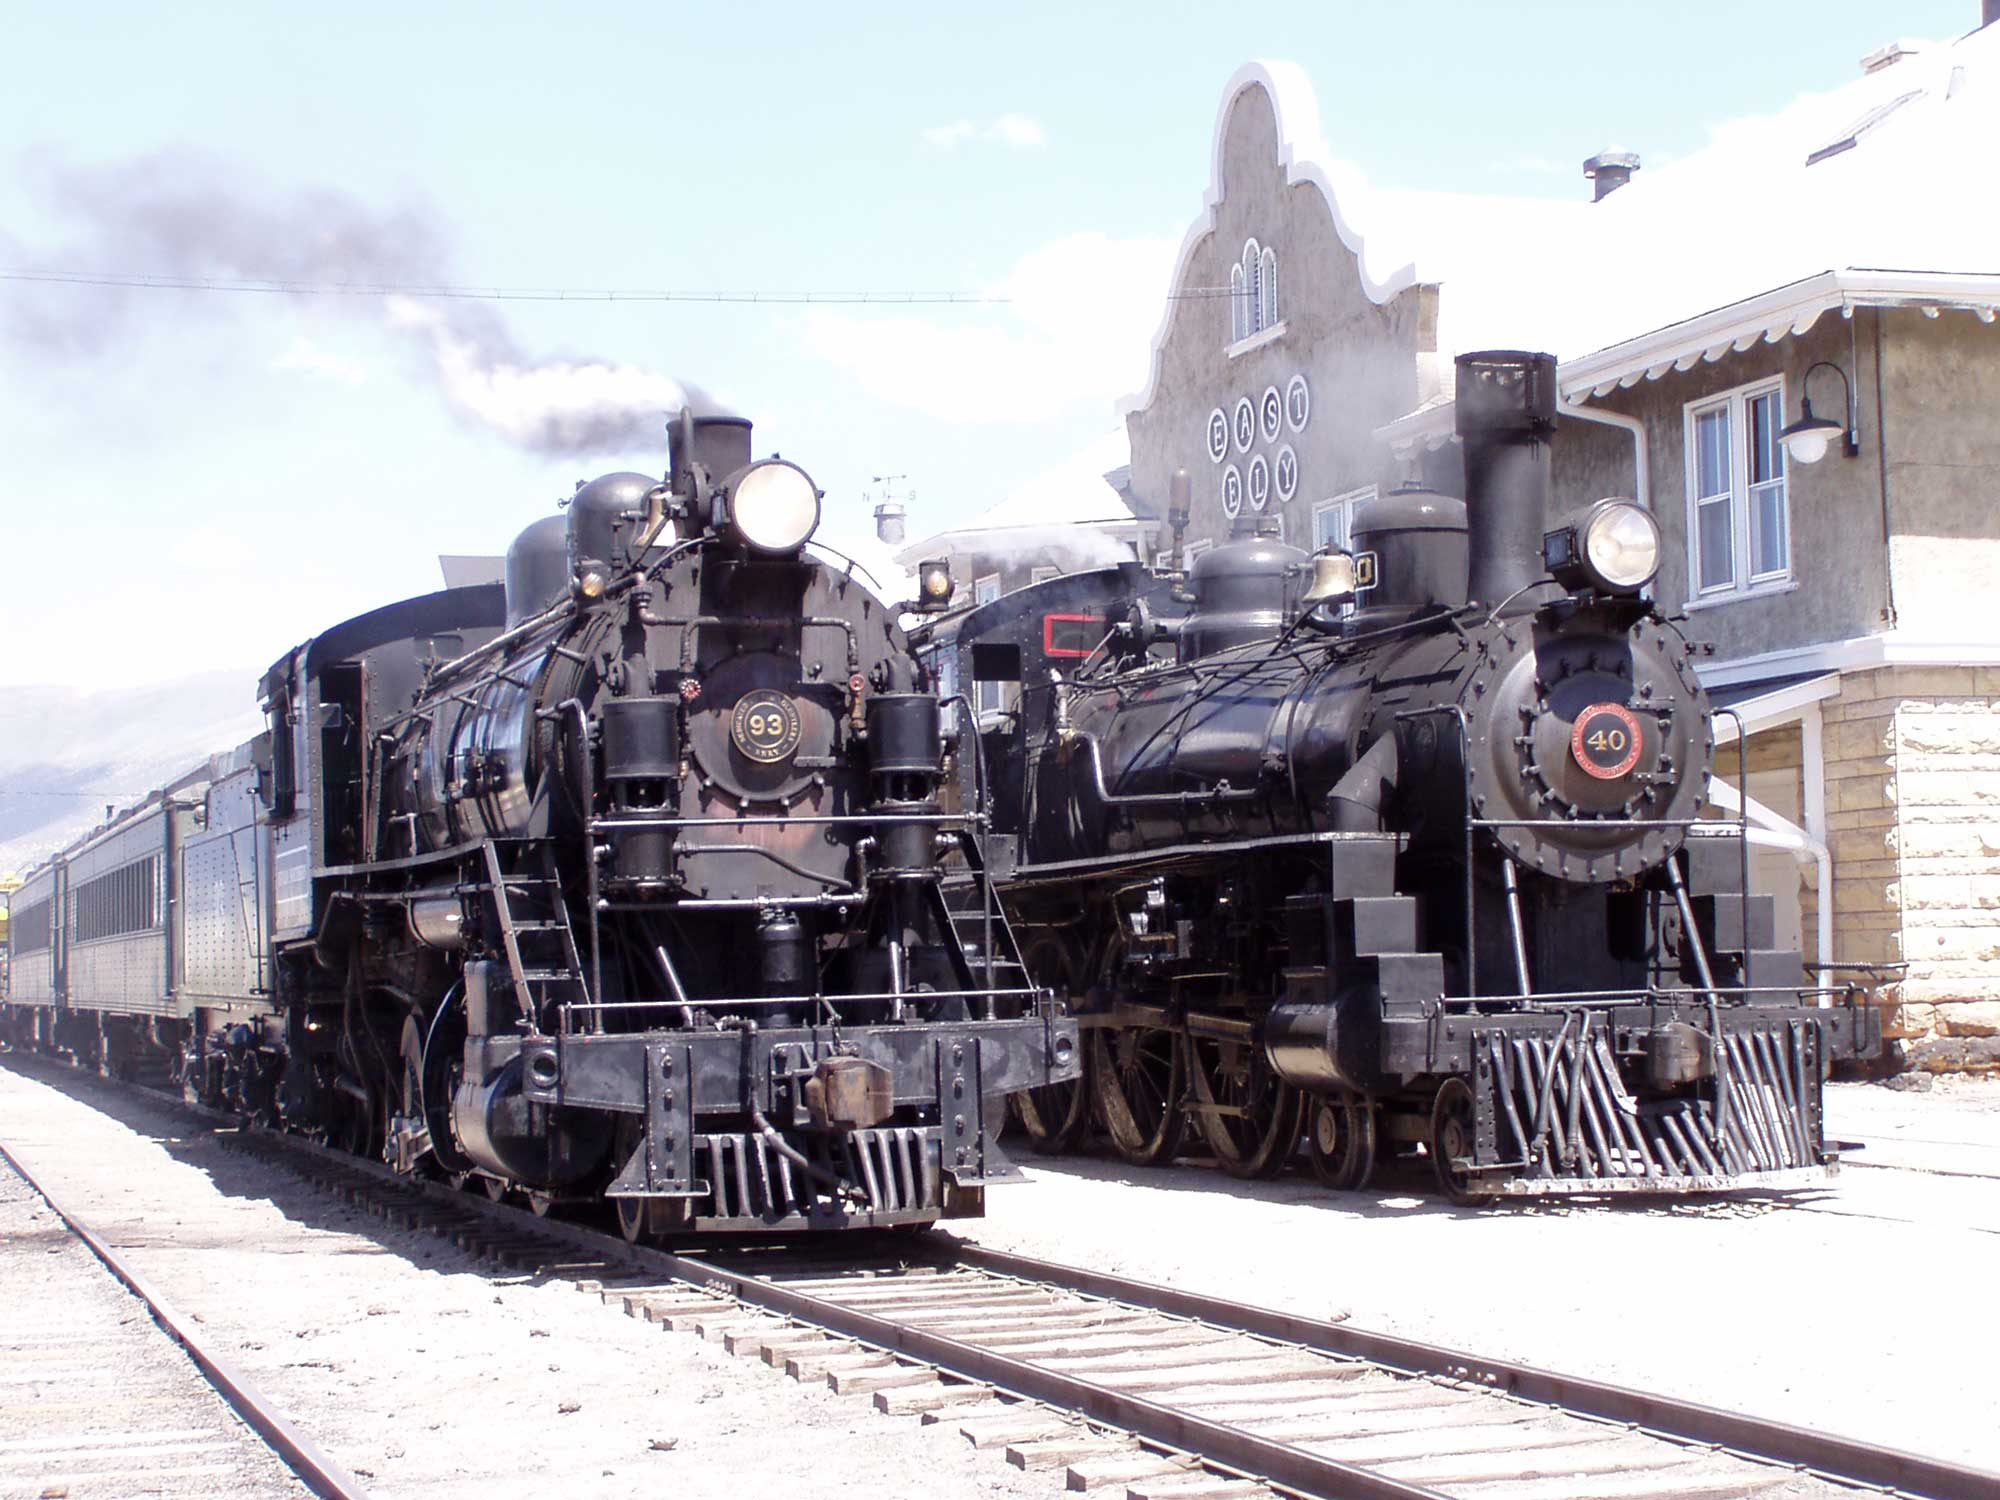 <span class=gs></span>Nevada Northern Railway